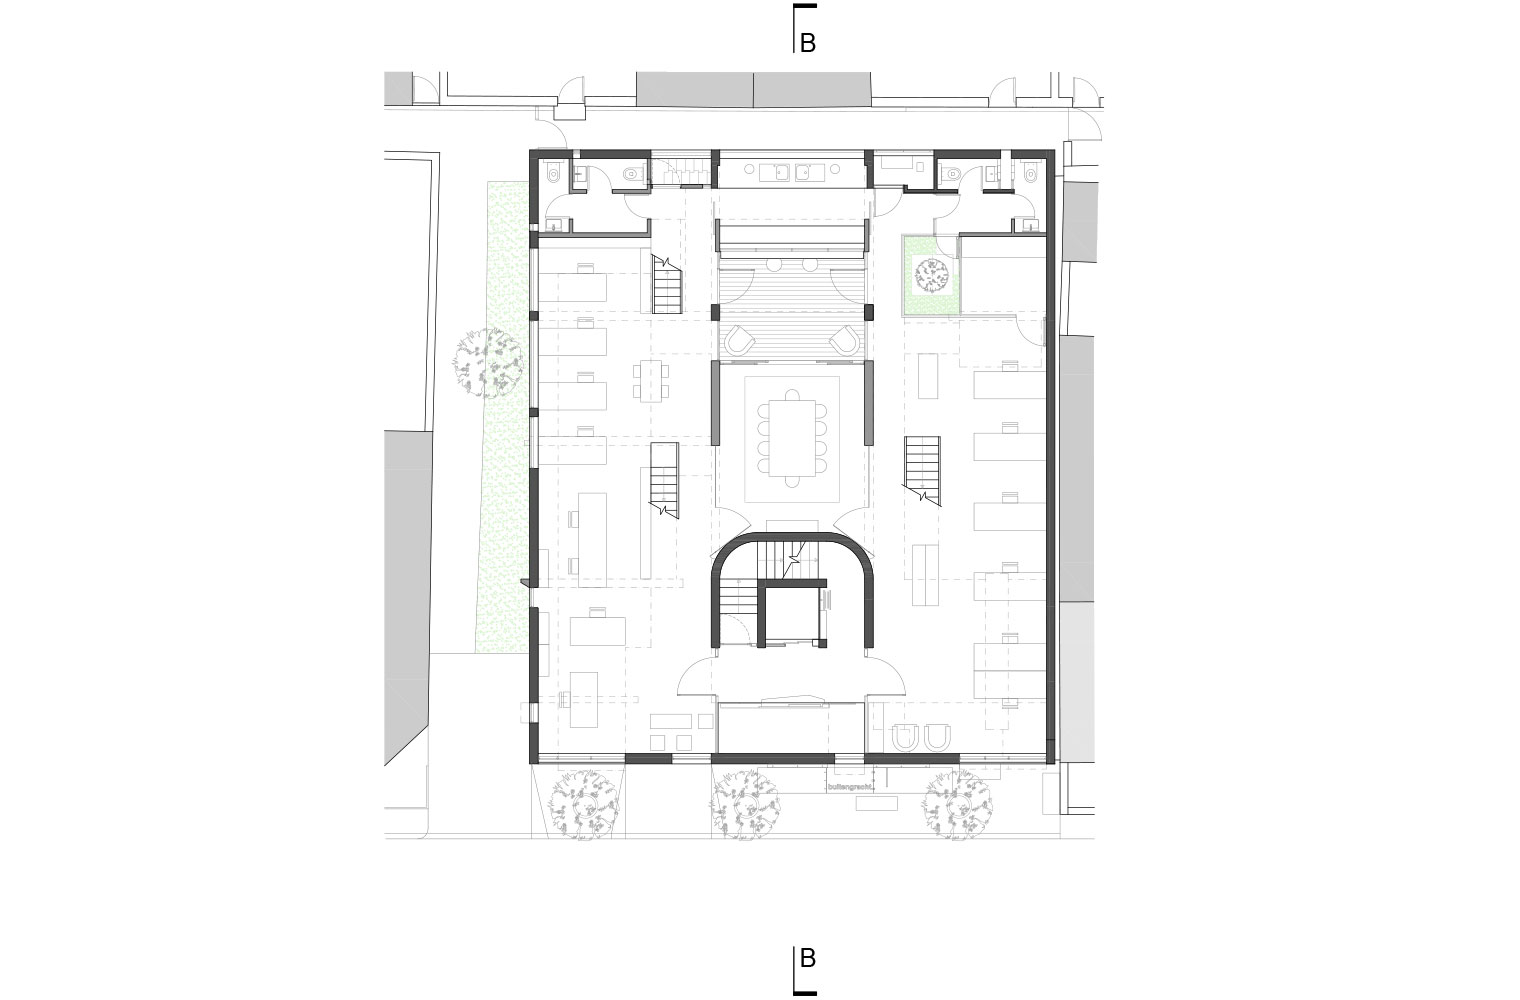 236-Buitengracht-First Floor Plan